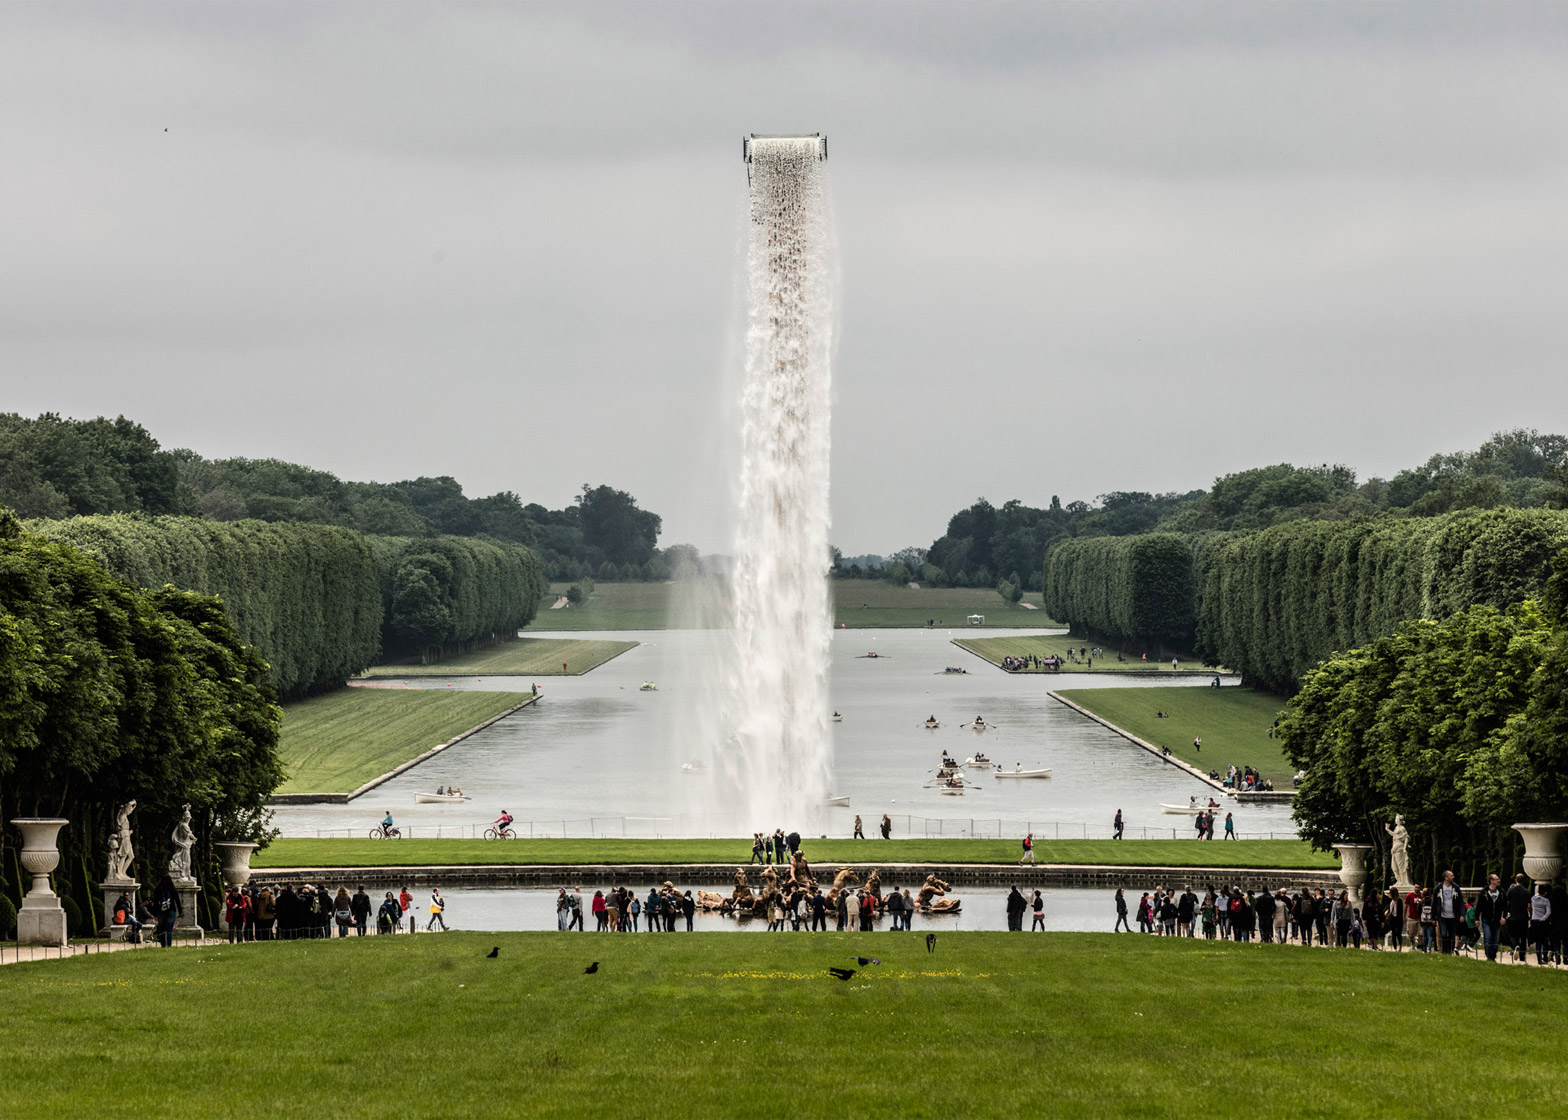 waterfall-olafur-eliasson-versailles-installation-art-france-anders-sune-berg_dezeen_1568_3